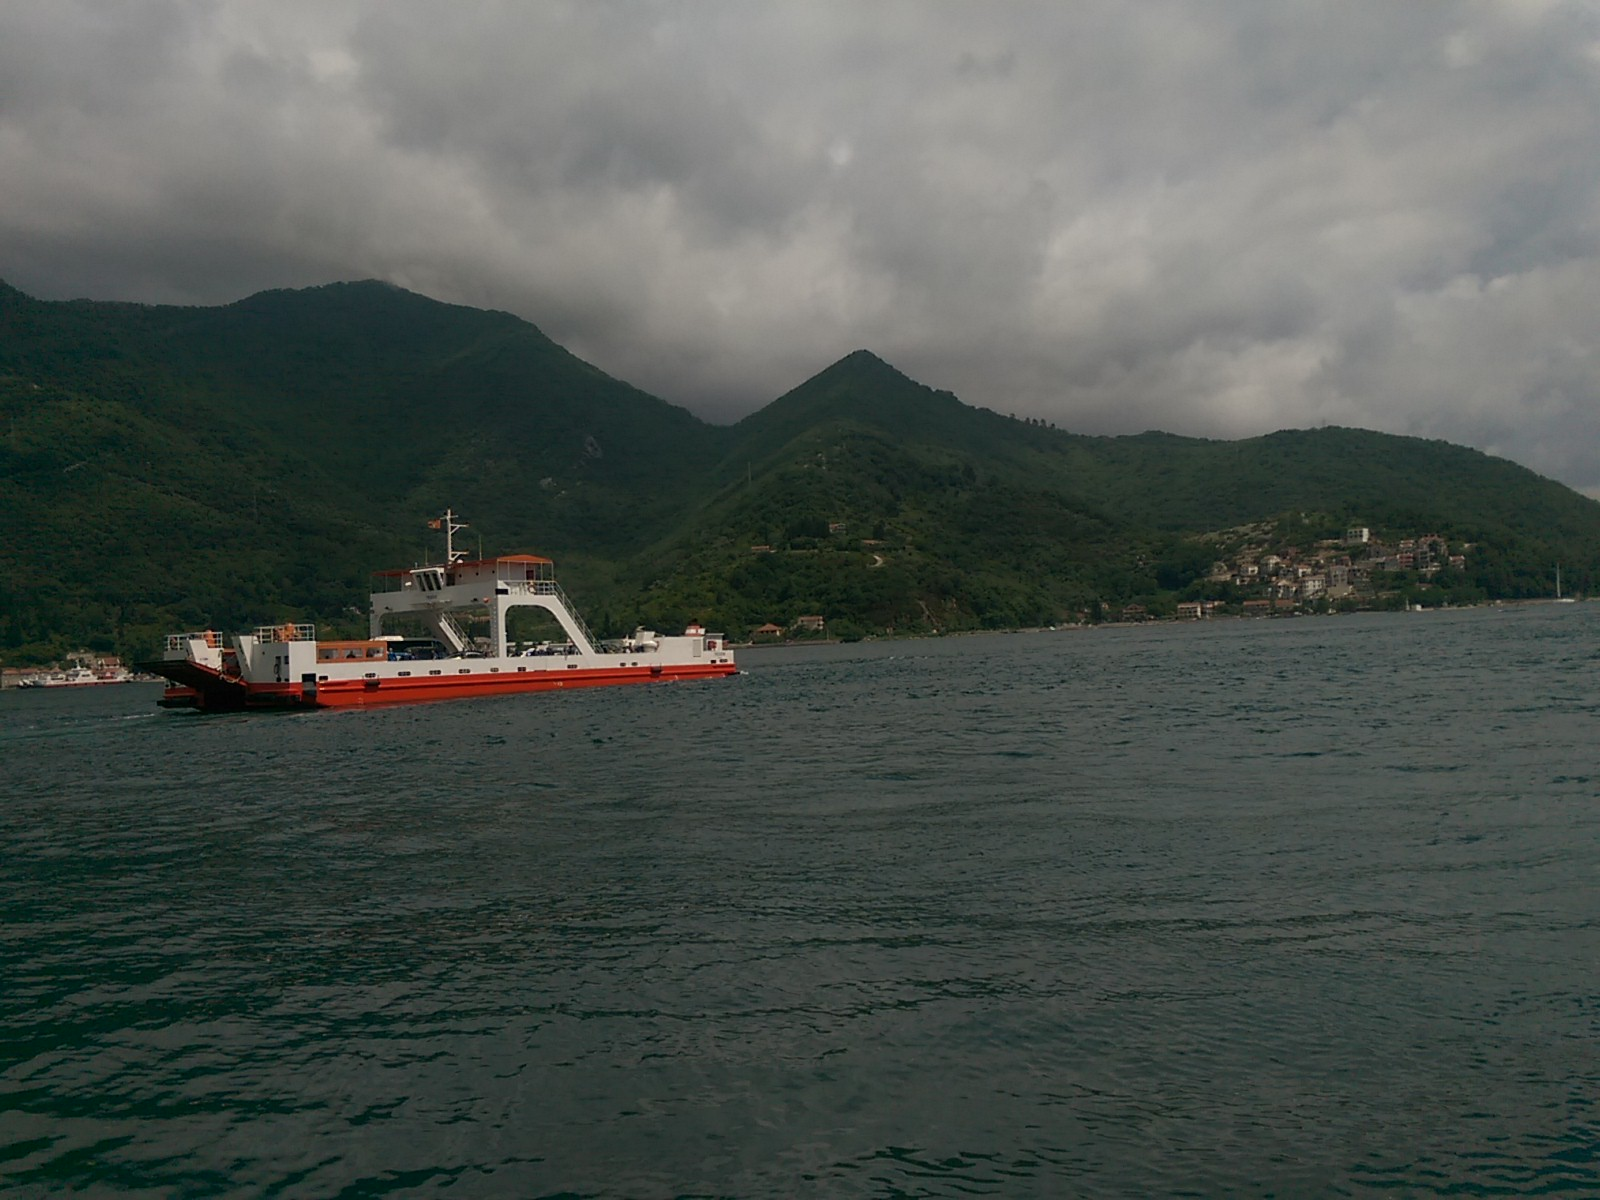 Moody cloudy skies over some pointy mountains by the sea, with a red and white car ferry crossing from left to right